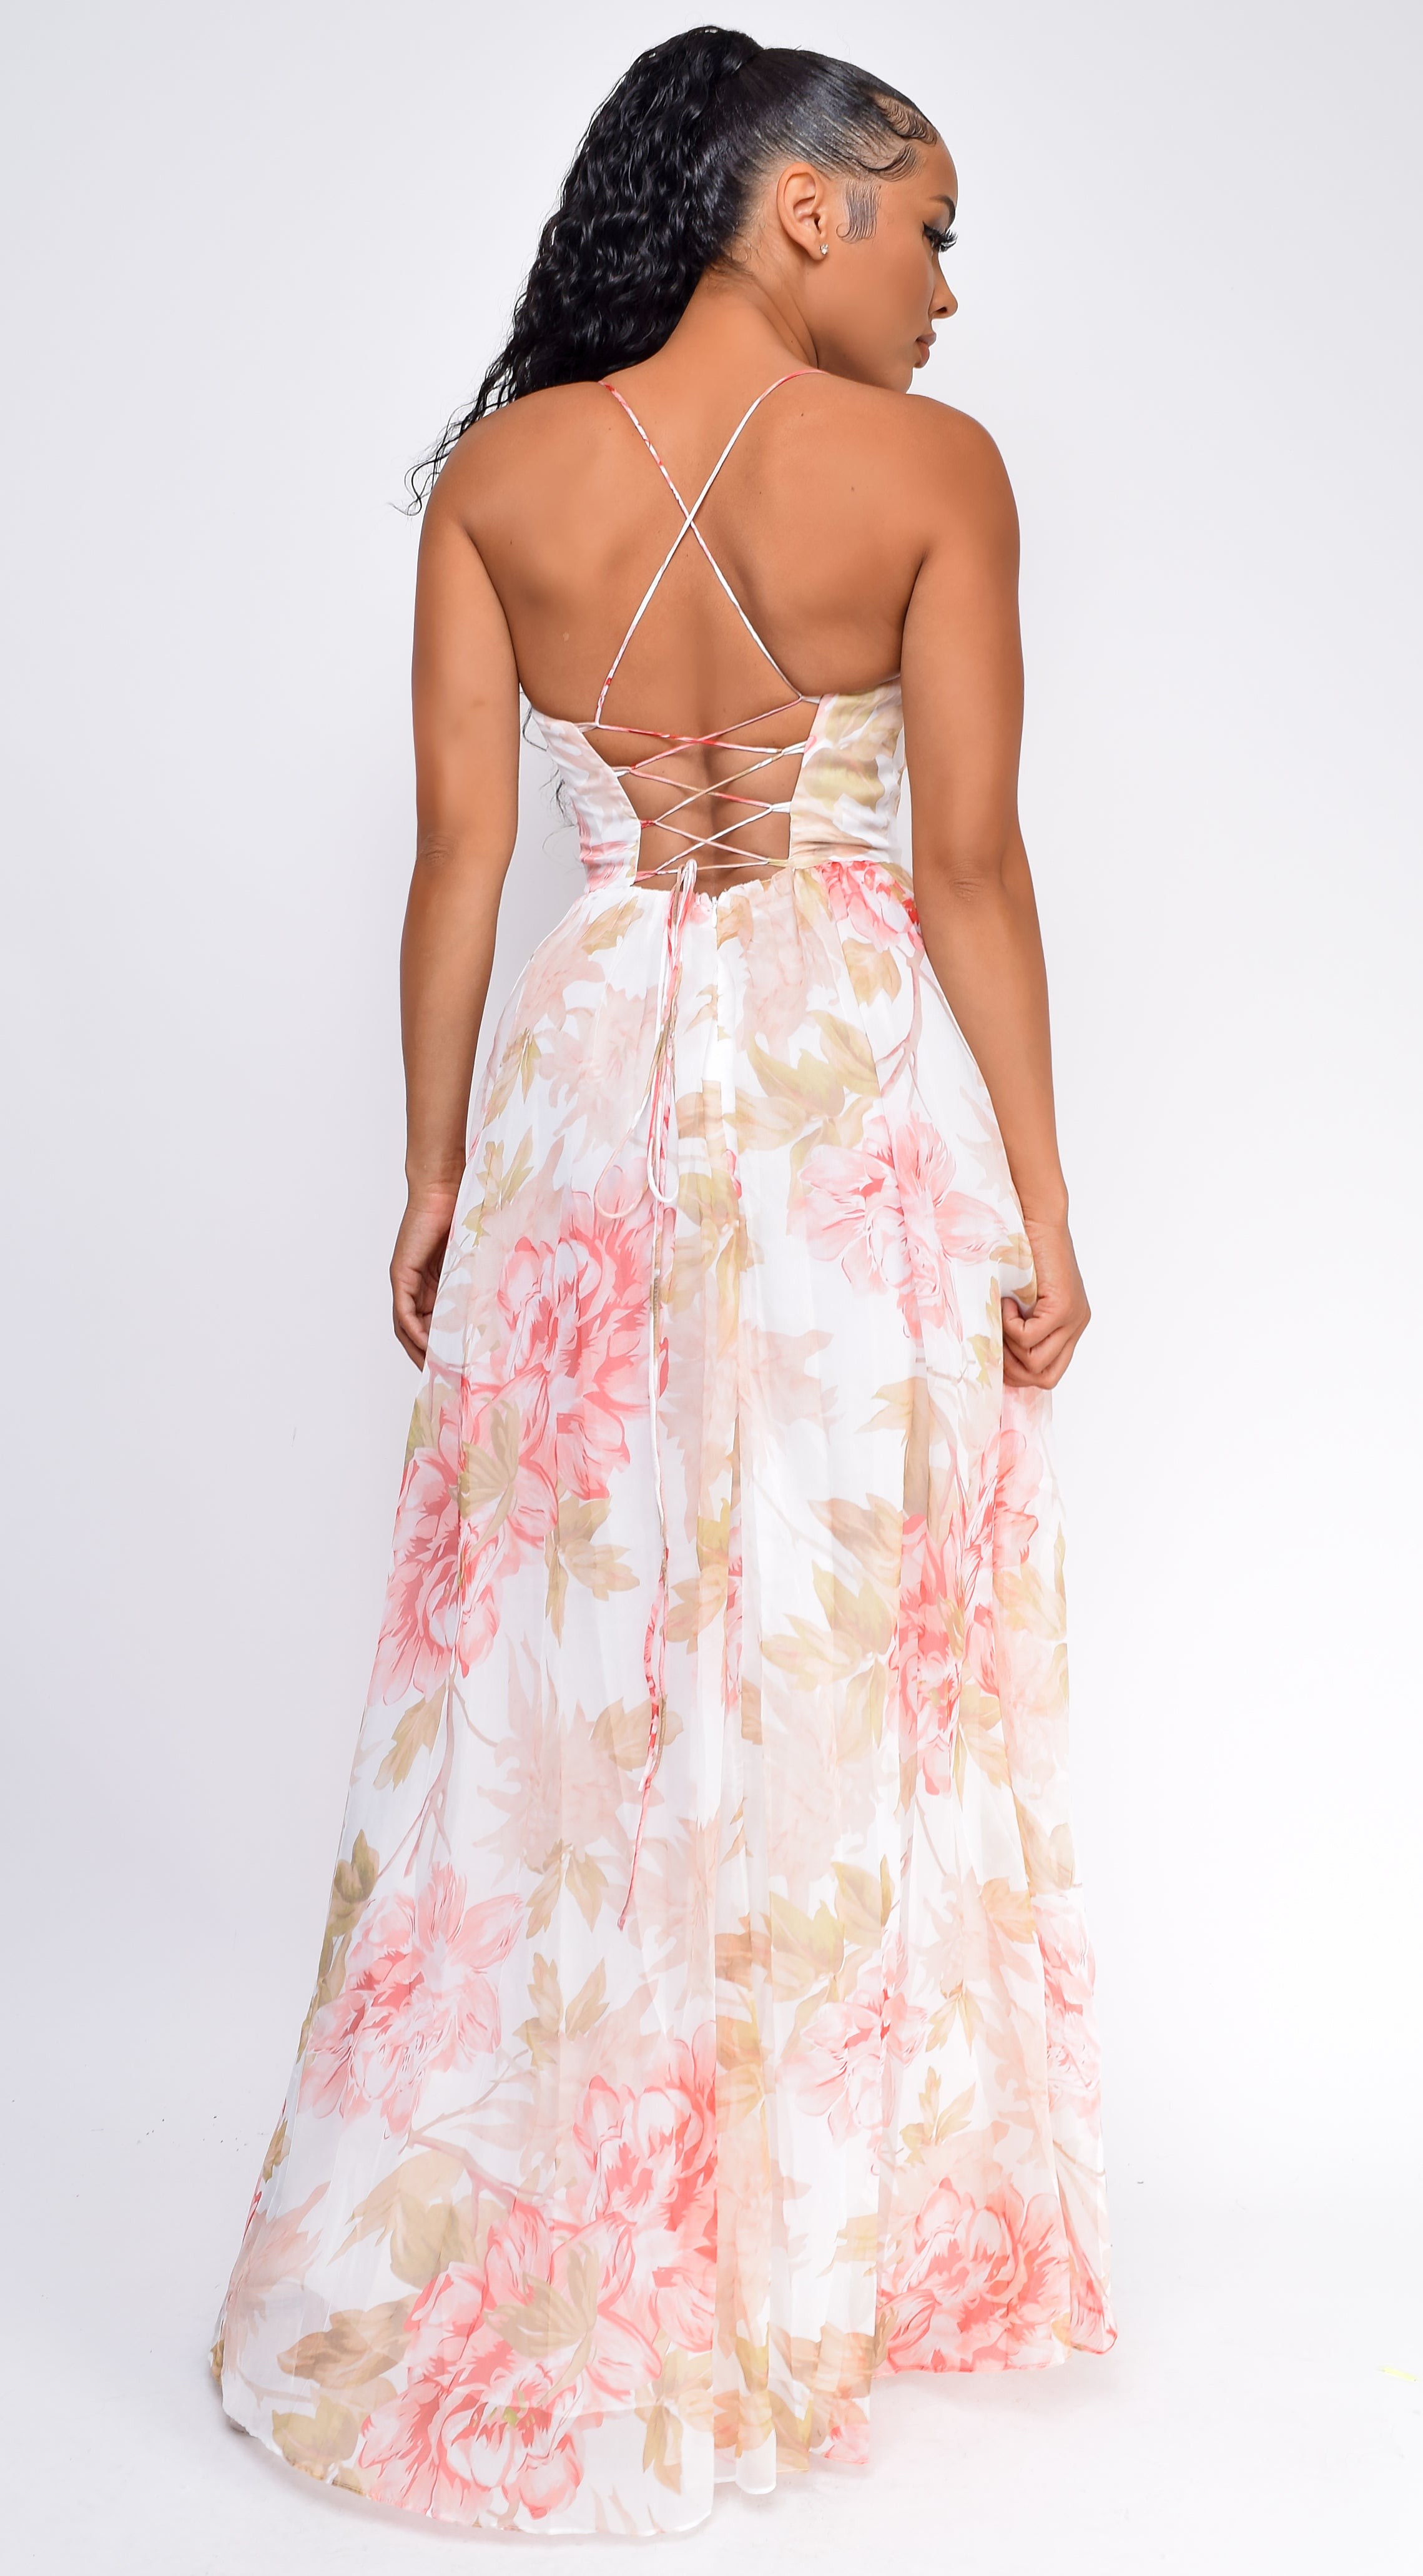 Melinda White Pink Floral Lace Back  Side Slit Maxi Dress